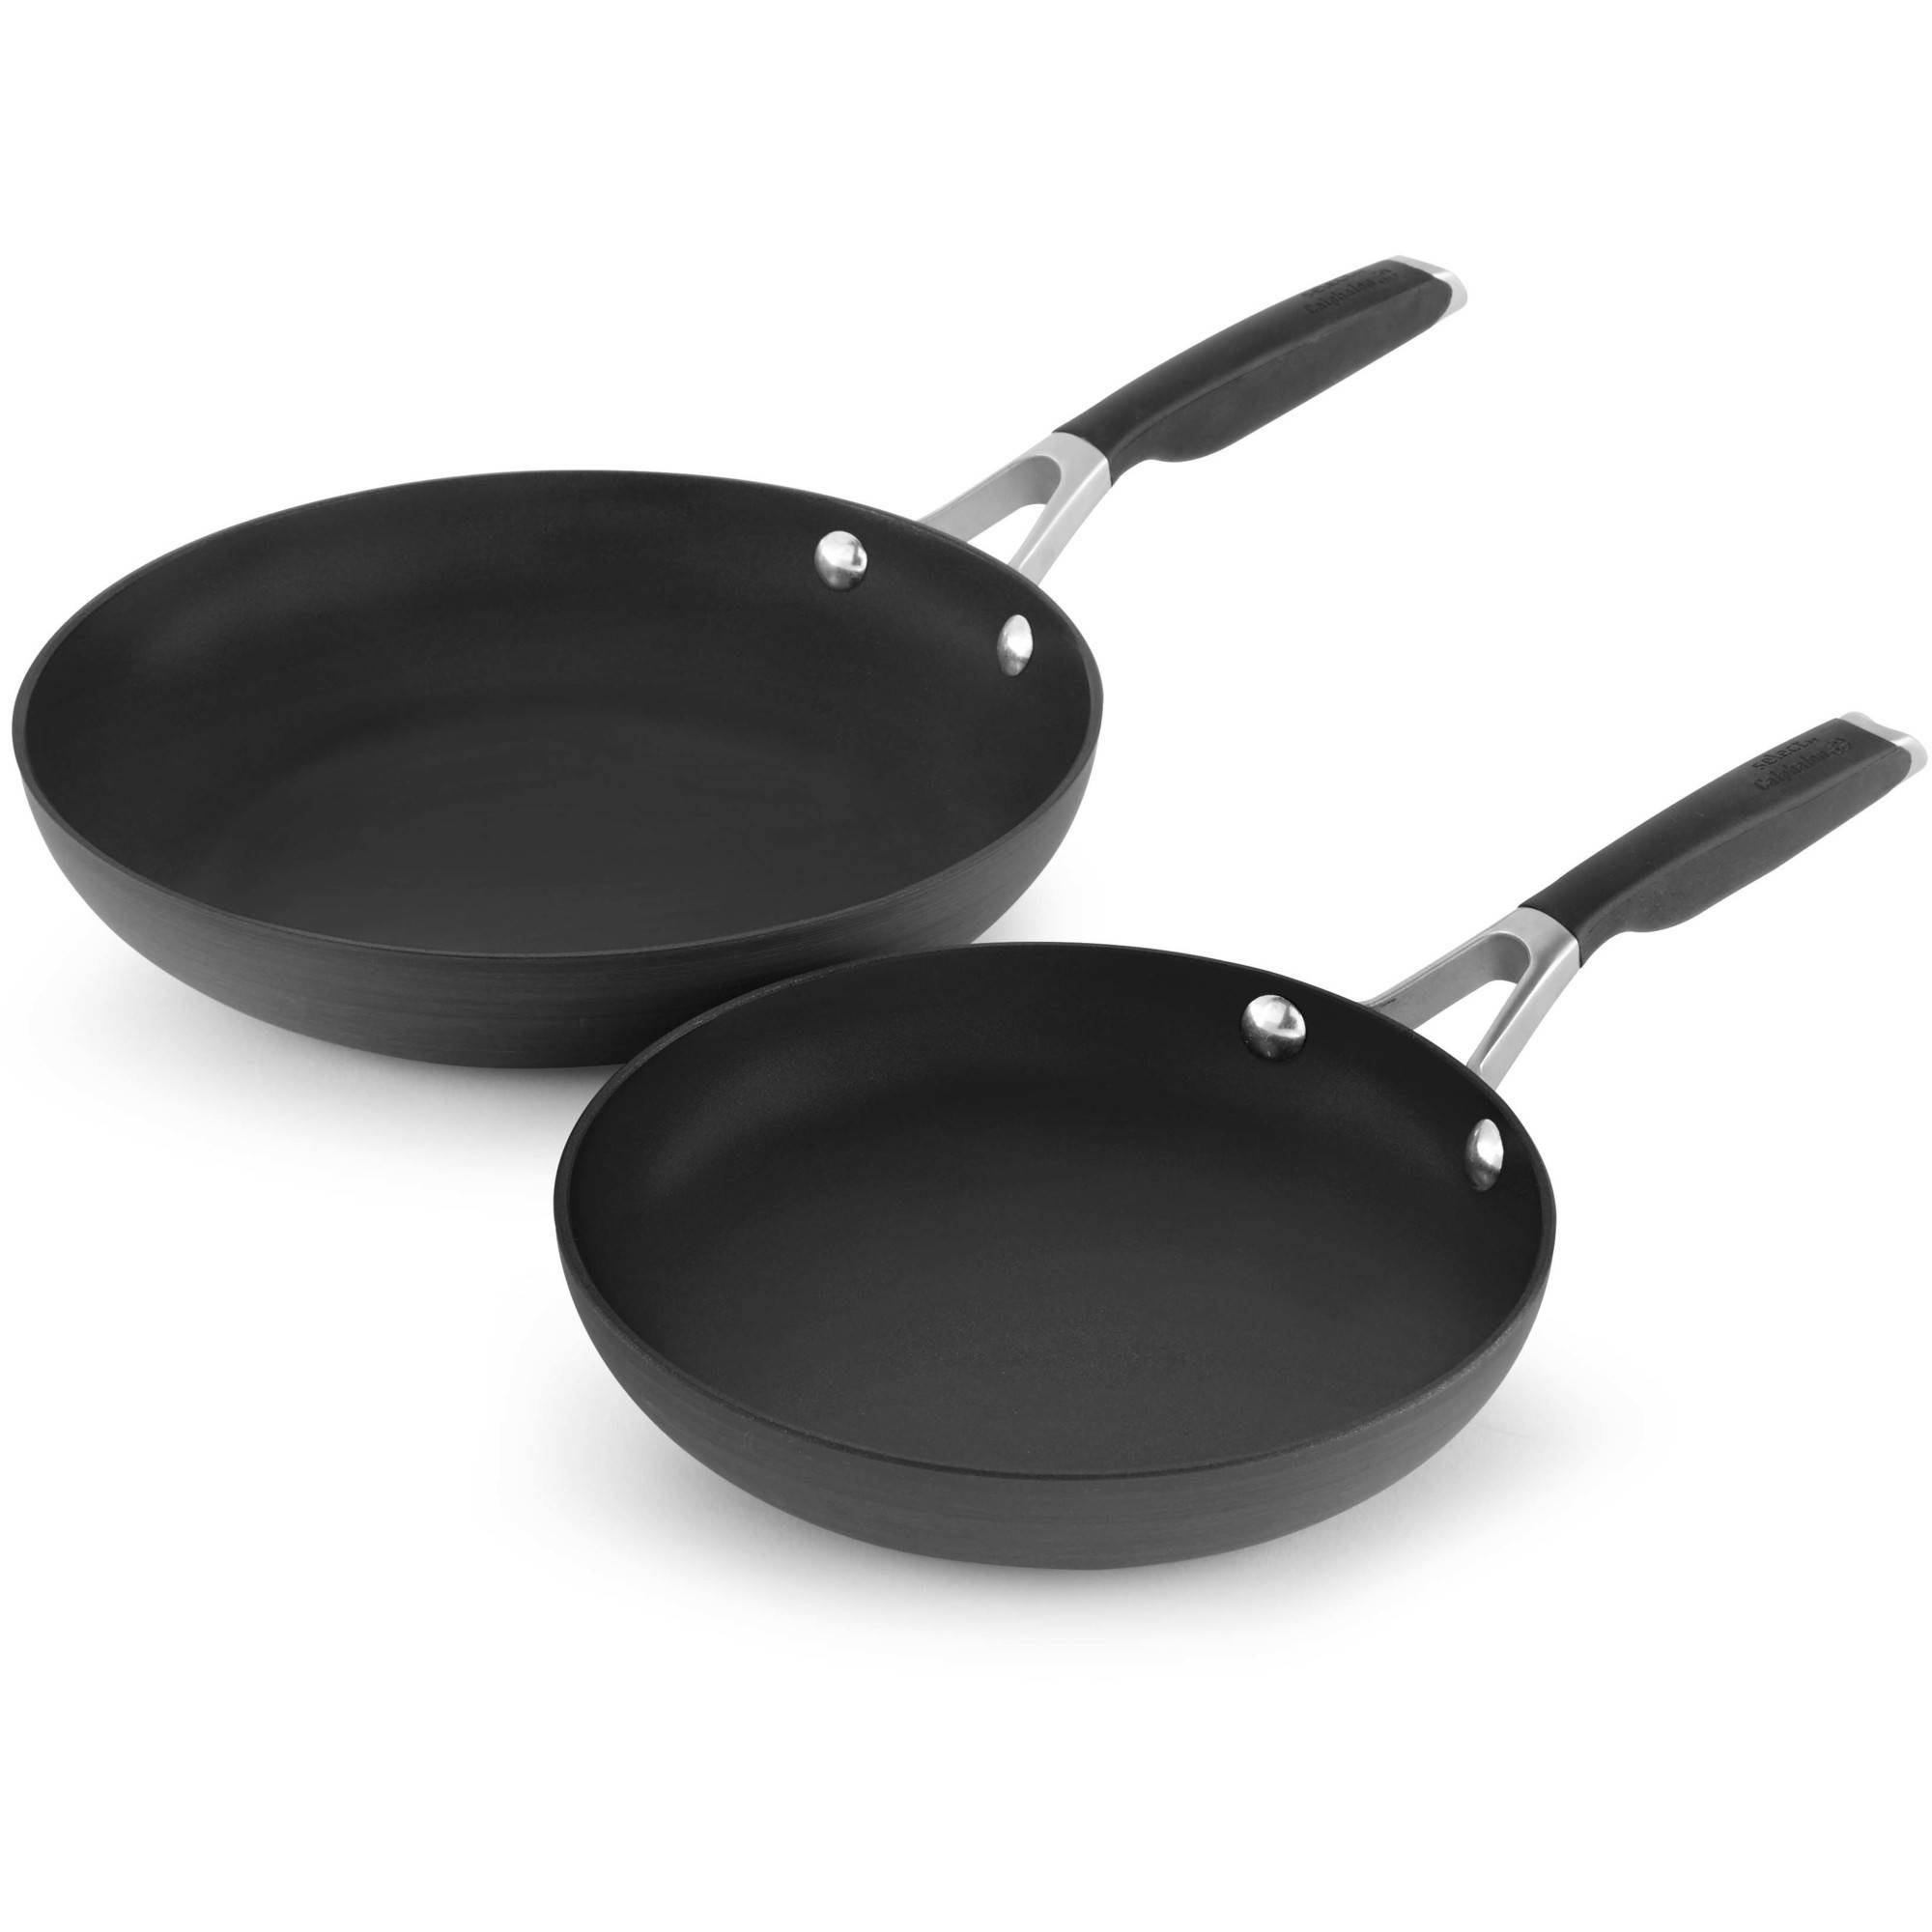 select by calphalon nonstick 8inch and 10inch fry pan combo set walmartcom - Best Non Stick Frying Pan